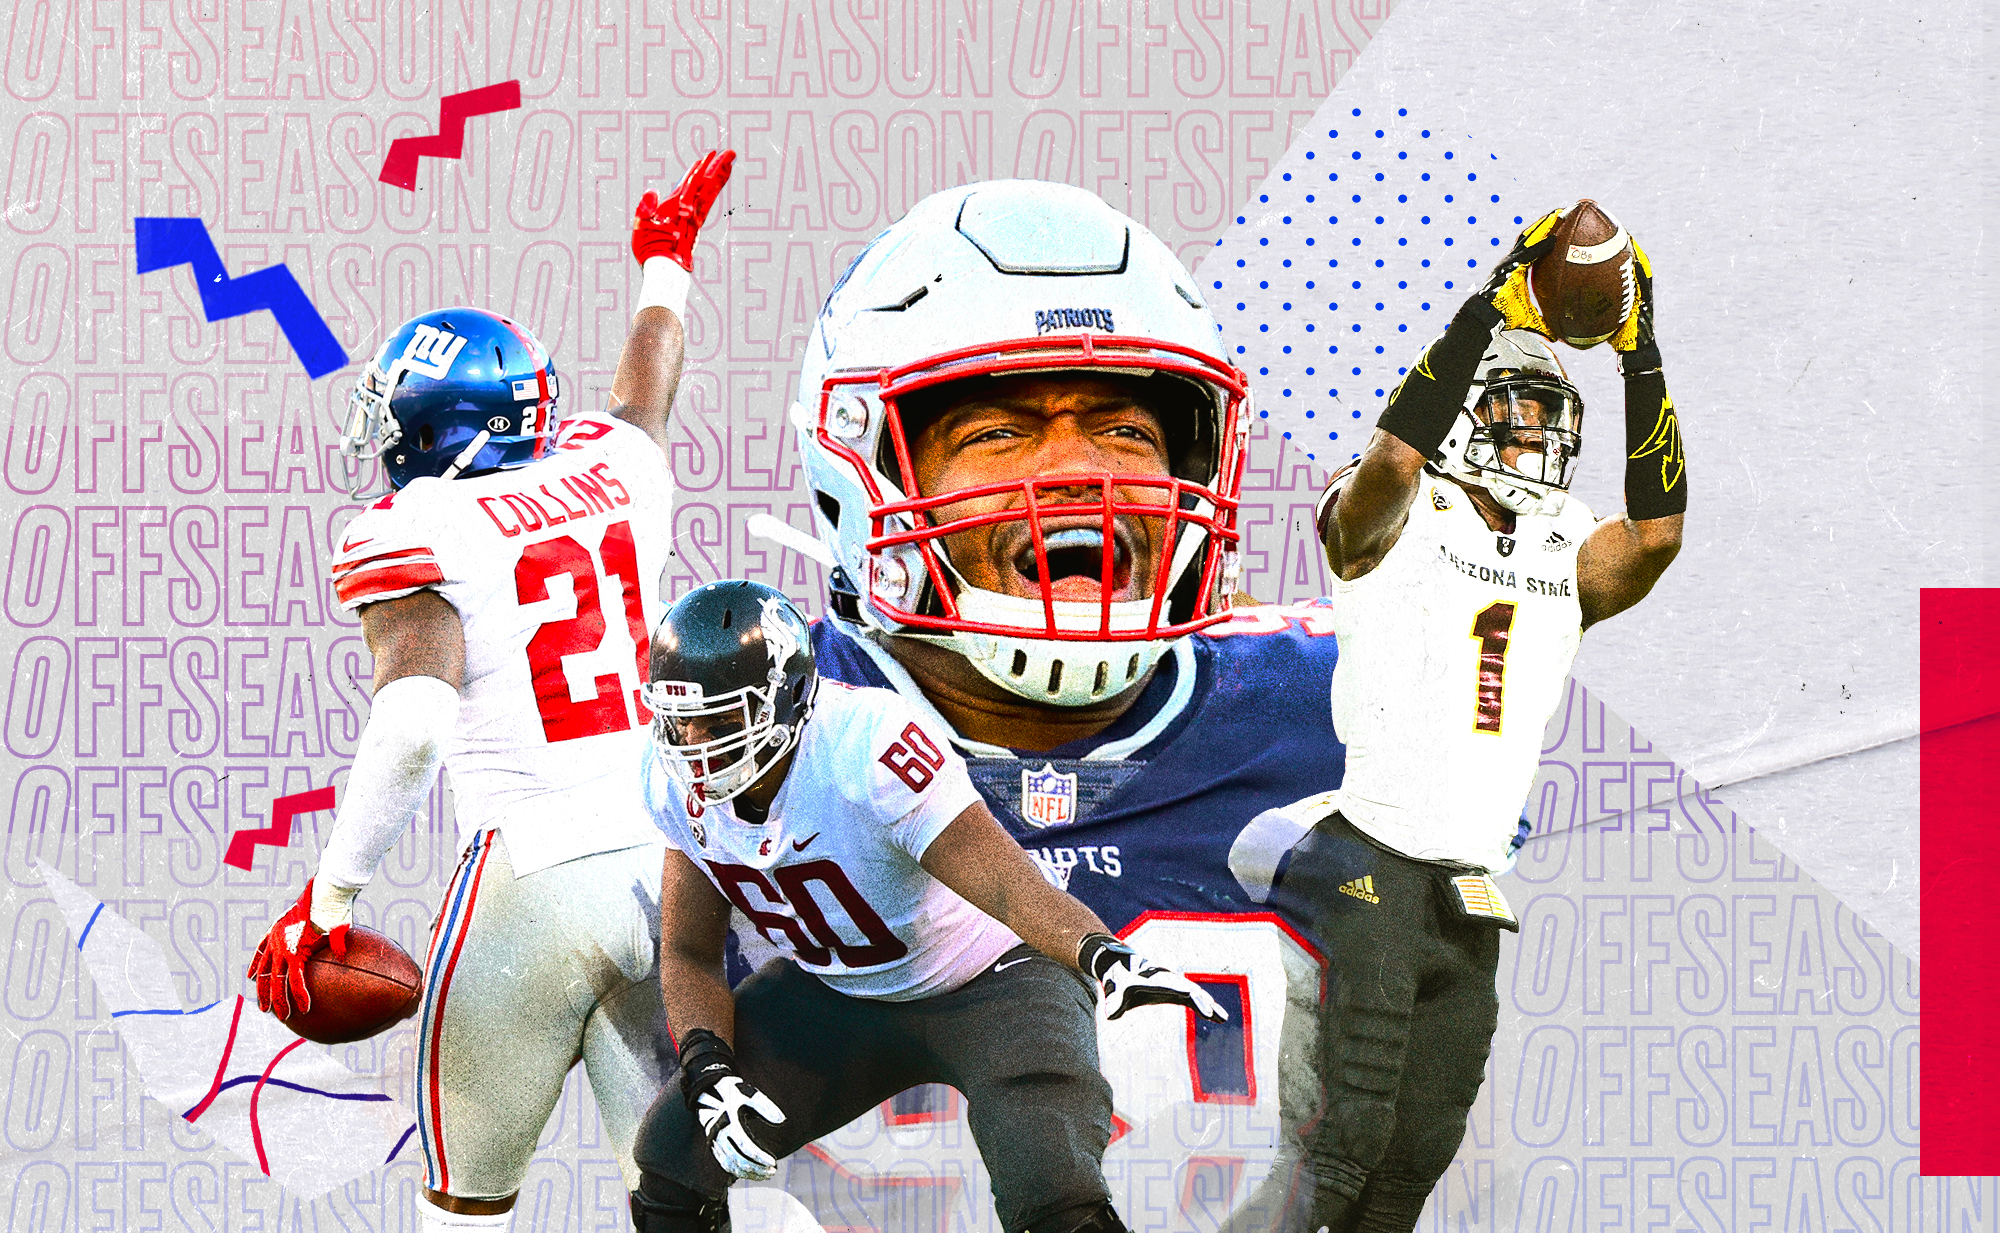 b28c6a09801 Fixing the biggest 2019 offseason needs for all 32 NFL teams | NFL Offseason  Guide 2019